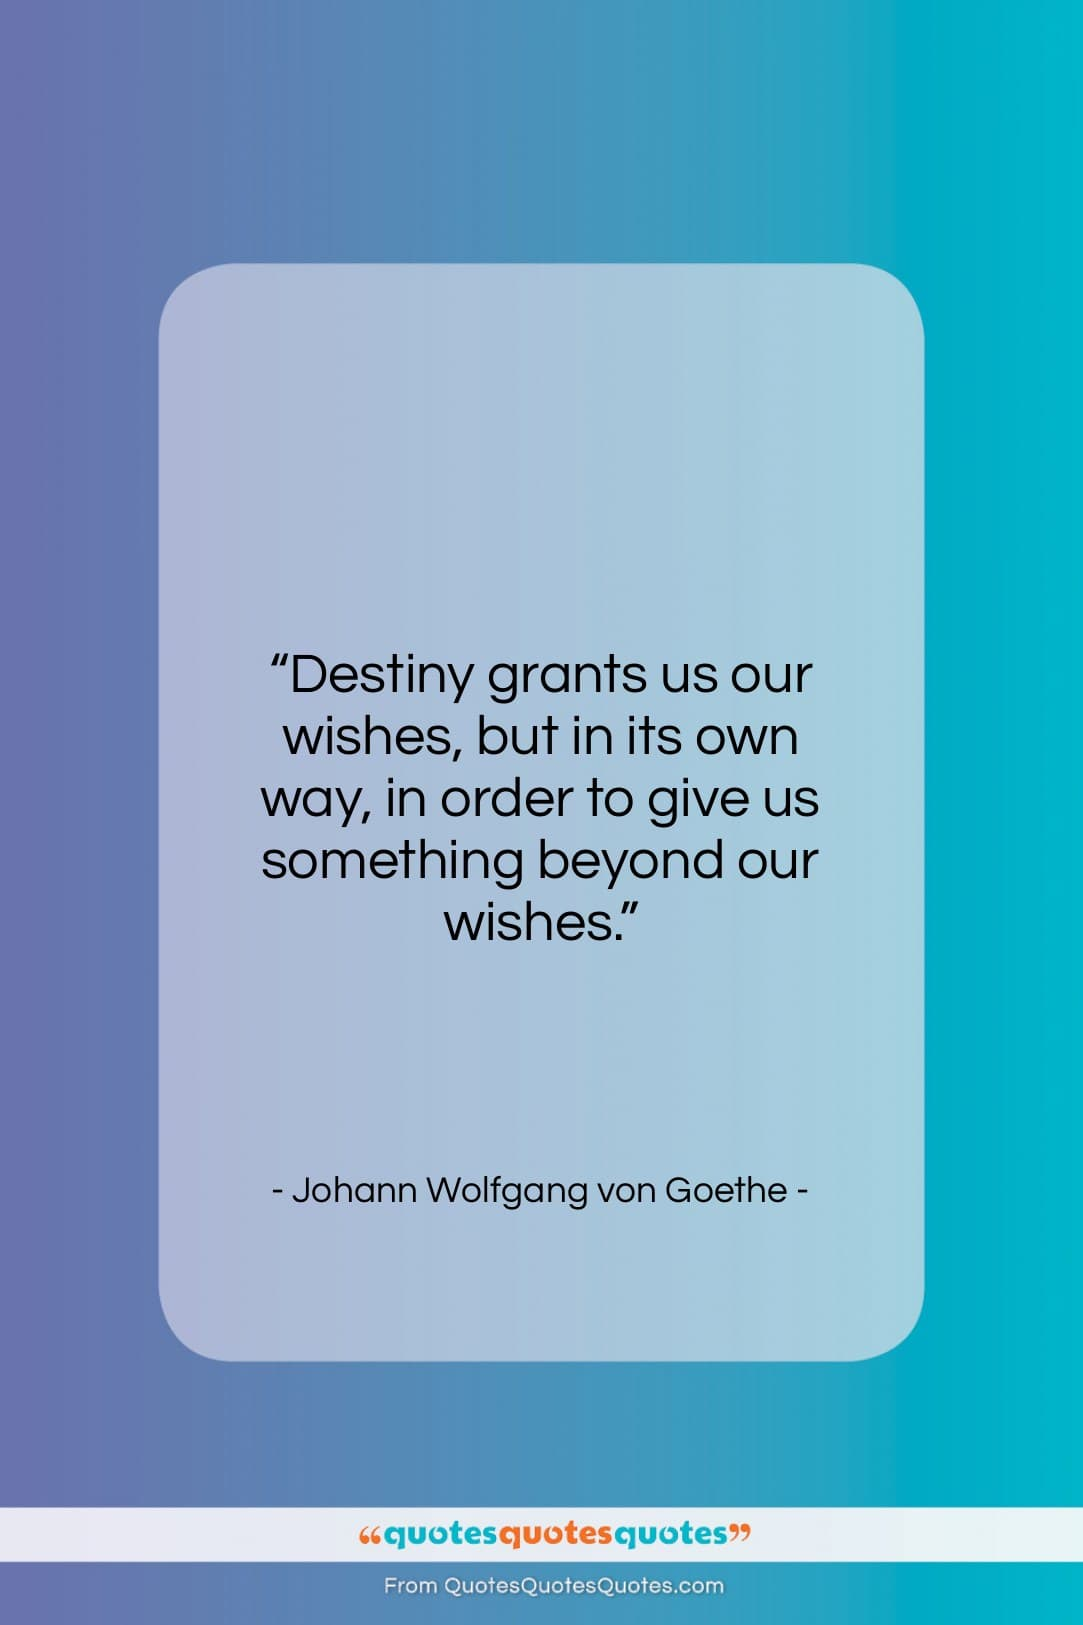 """Johann Wolfgang von Goethe quote: """"Destiny grants us our wishes, but in…""""- at QuotesQuotesQuotes.com"""